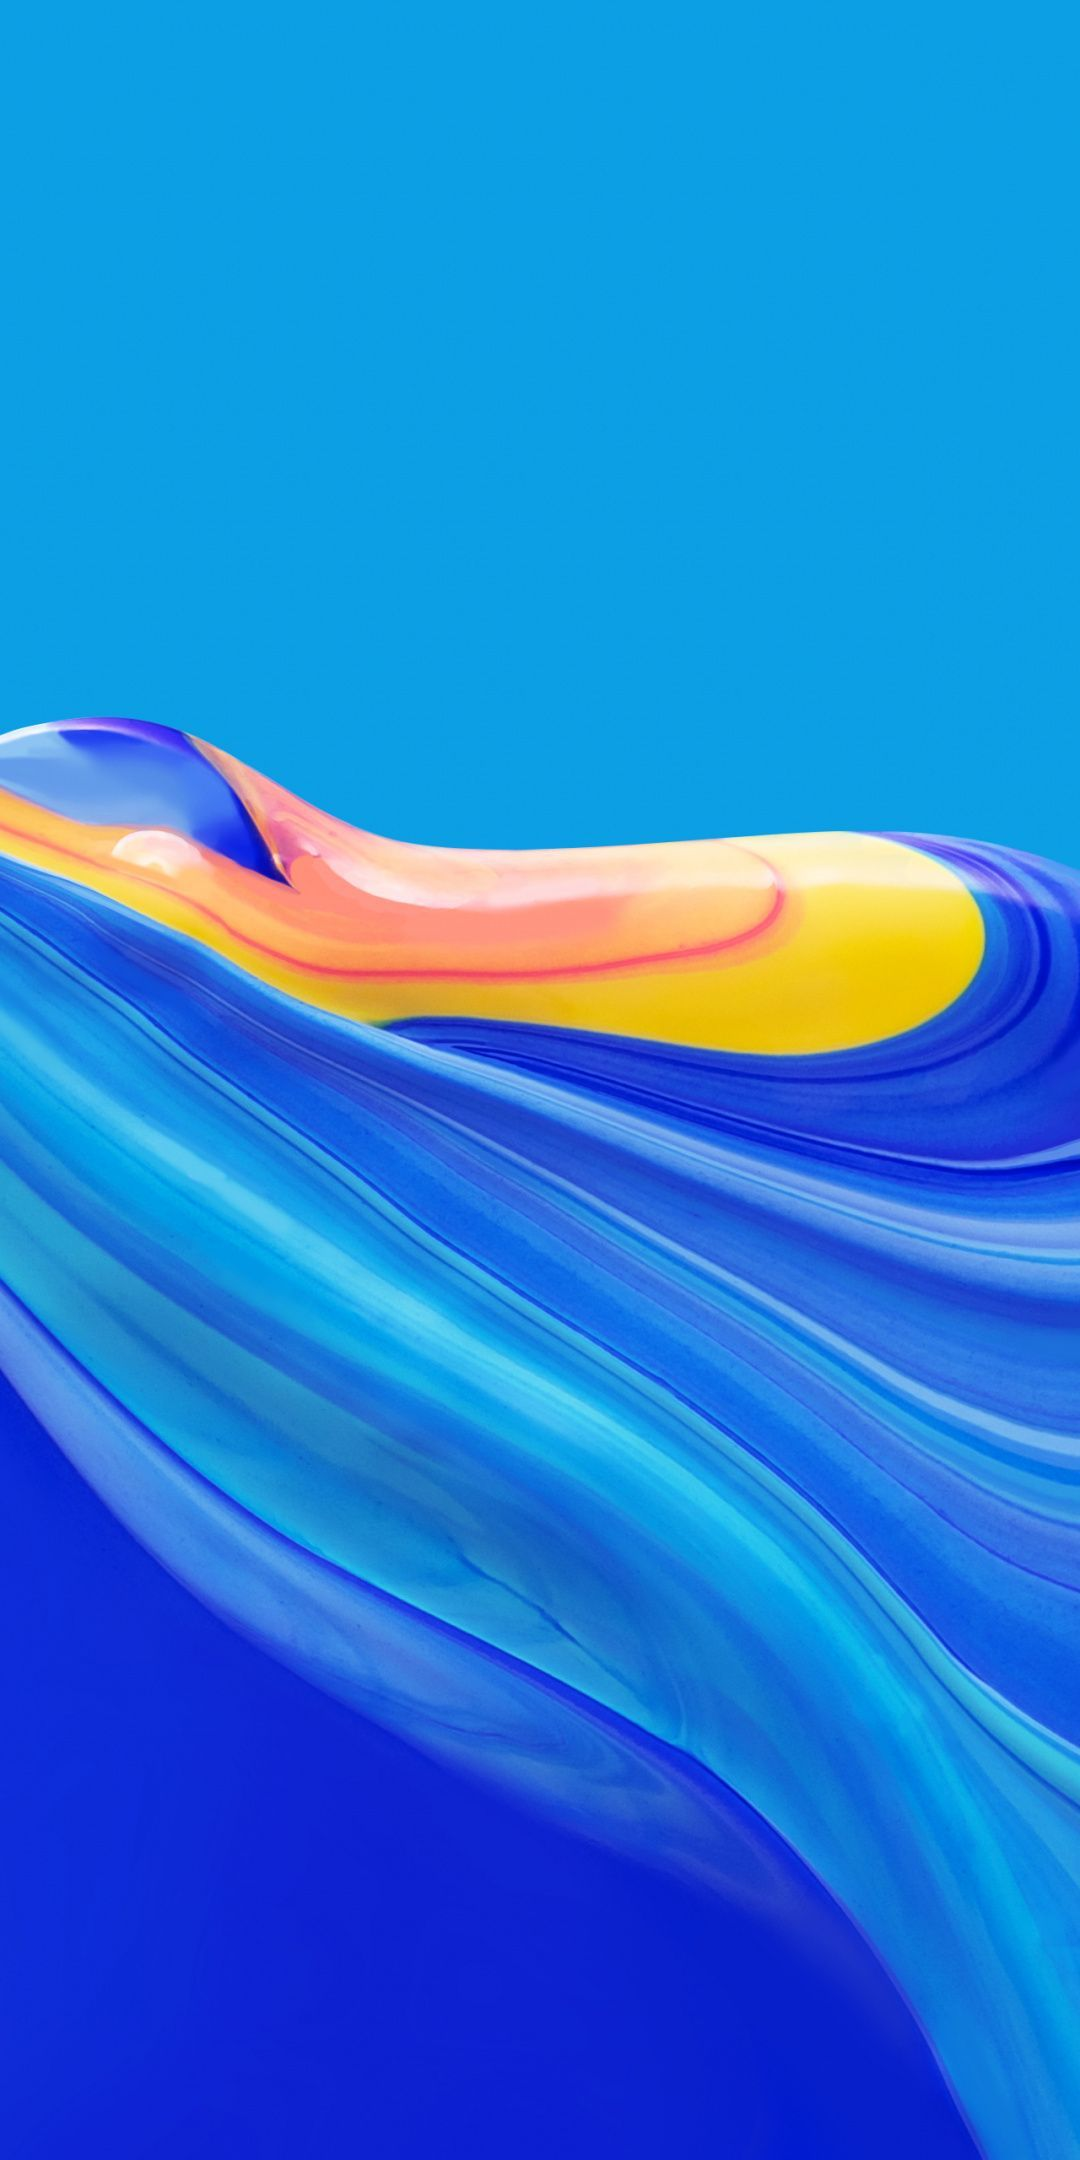 1080x2160 Blue Waves Abstraction Huawei Mediapad M6 Wallpaper In 2020 Samsung Wallpaper Abstract Iphone Wallpaper Huawei Wallpapers